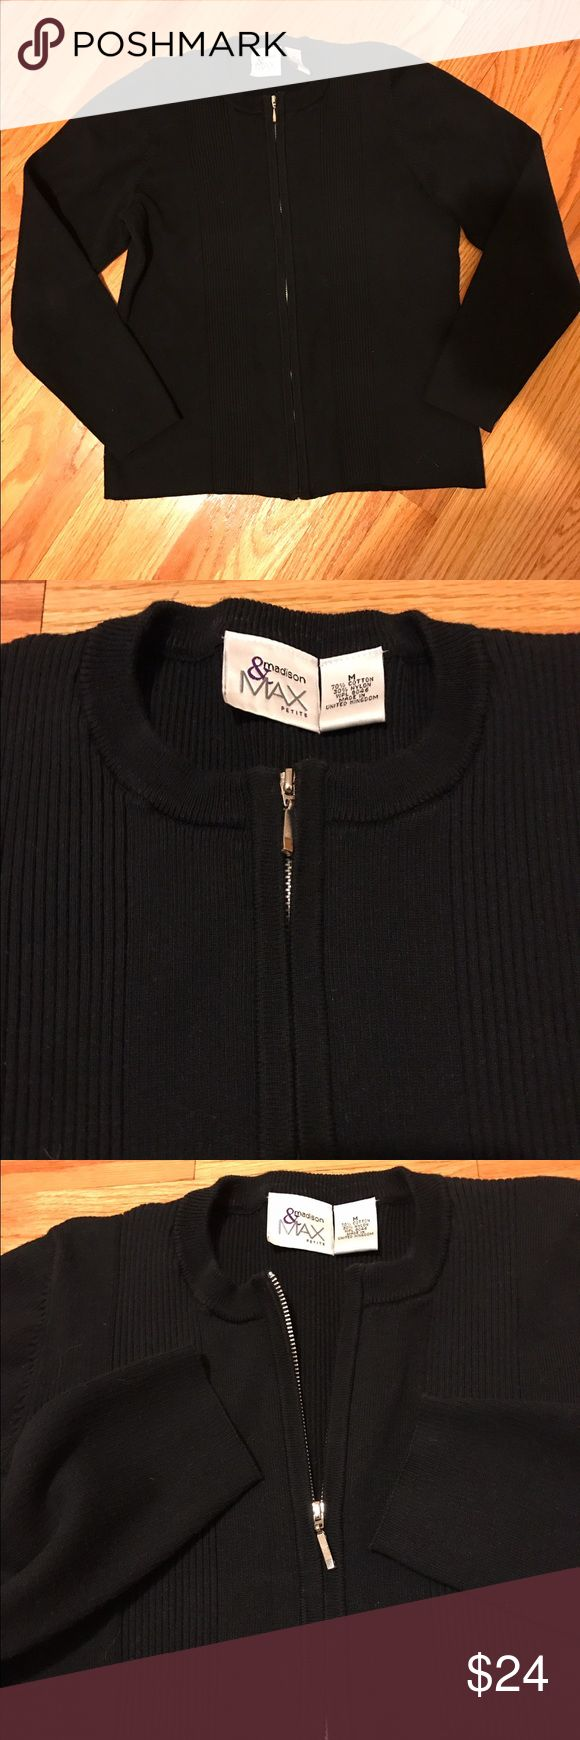 🅾️ Madison & Max Petite Sweater Size Medium Nice zipper sweater. Perfect for work or over a tank. 70% cotton, 30% nylon. Machine wash cold, tumble dry low. madison & MAX Petite Sweaters